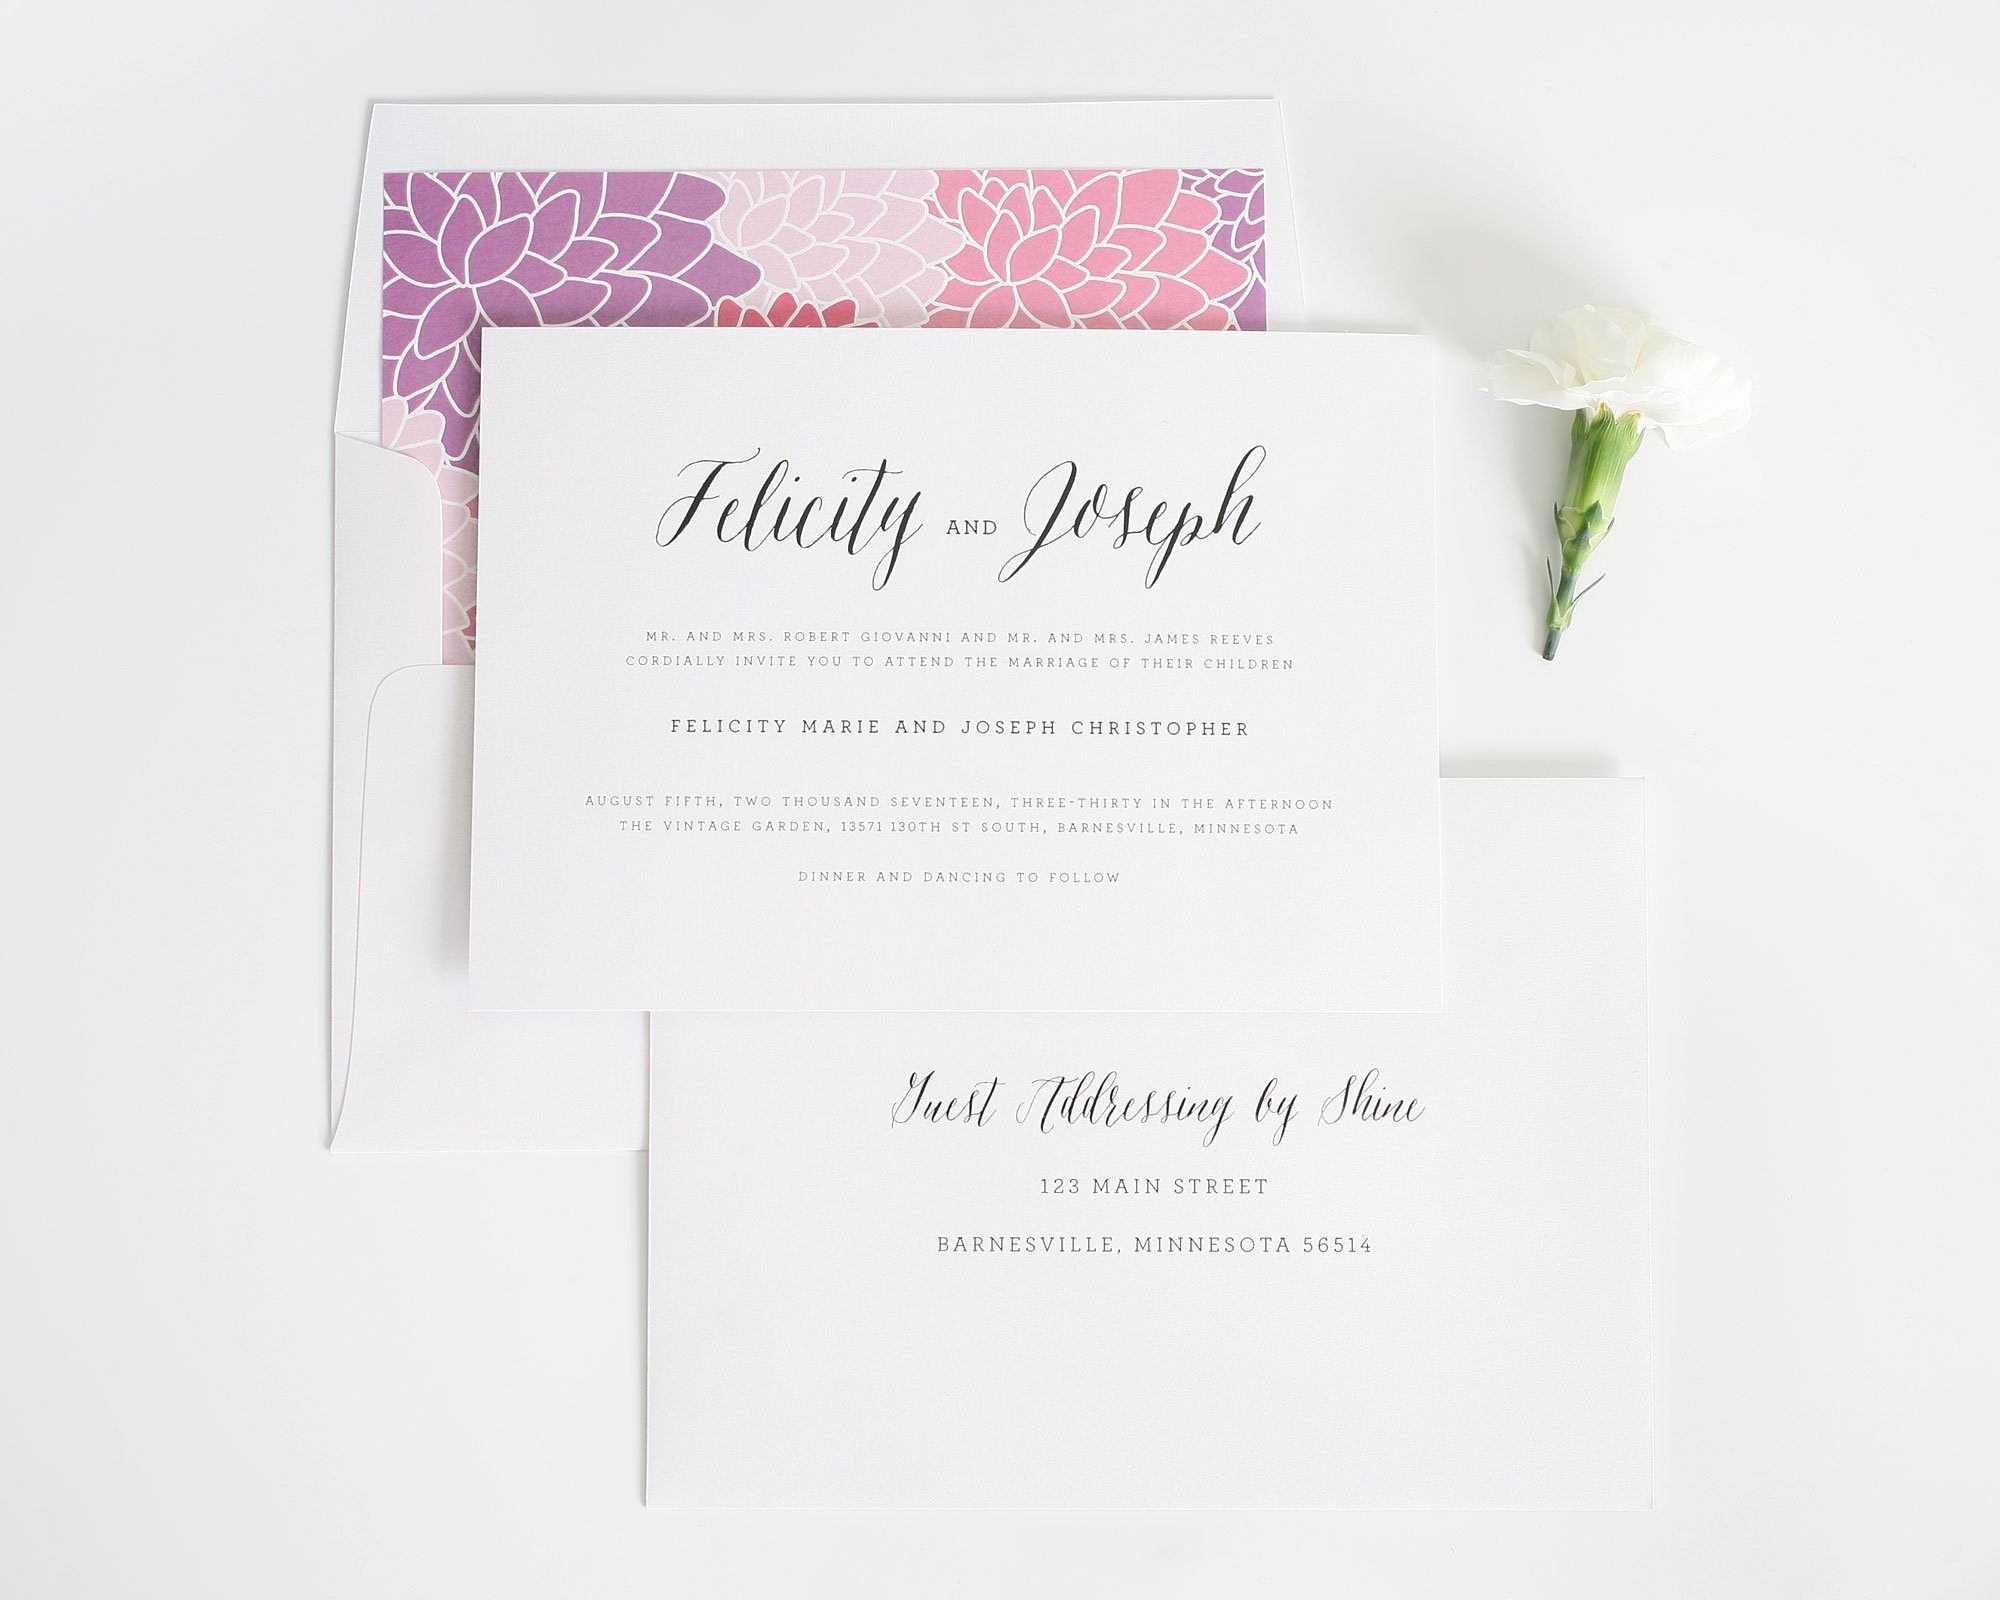 Rustic wedding invitation with floral pattern